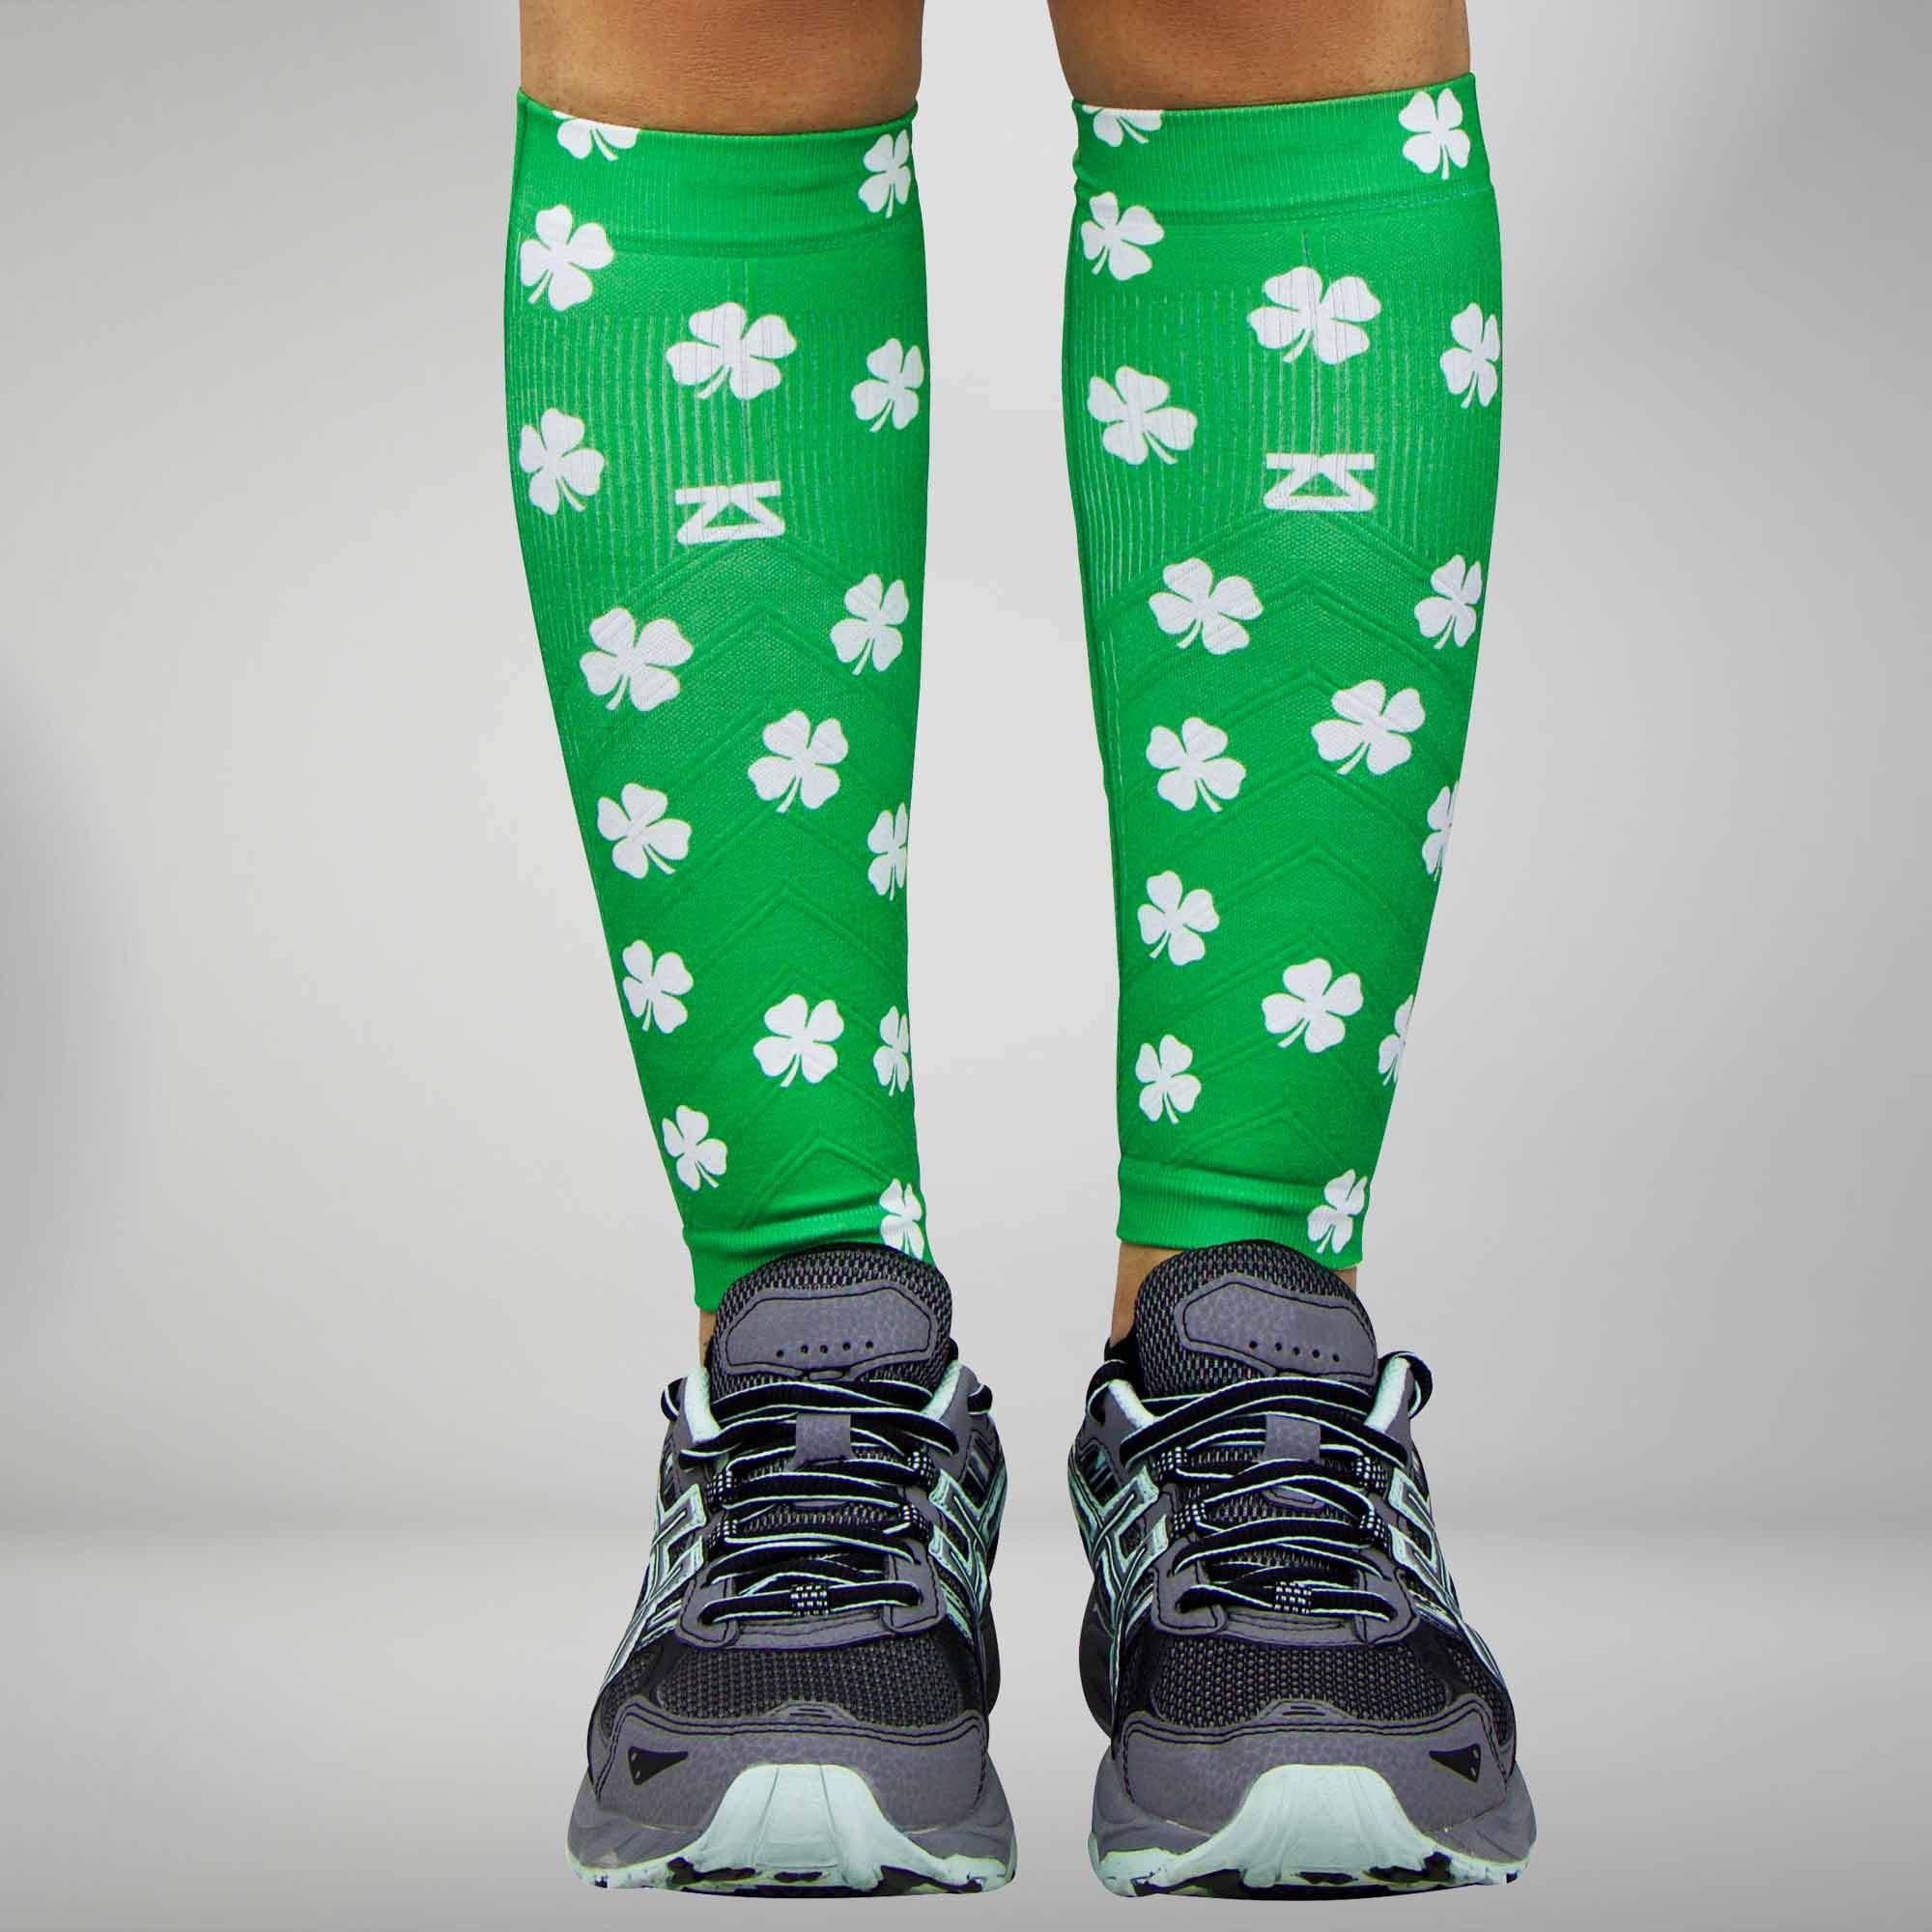 St. Patrick's Day Compression Leg Sleeves